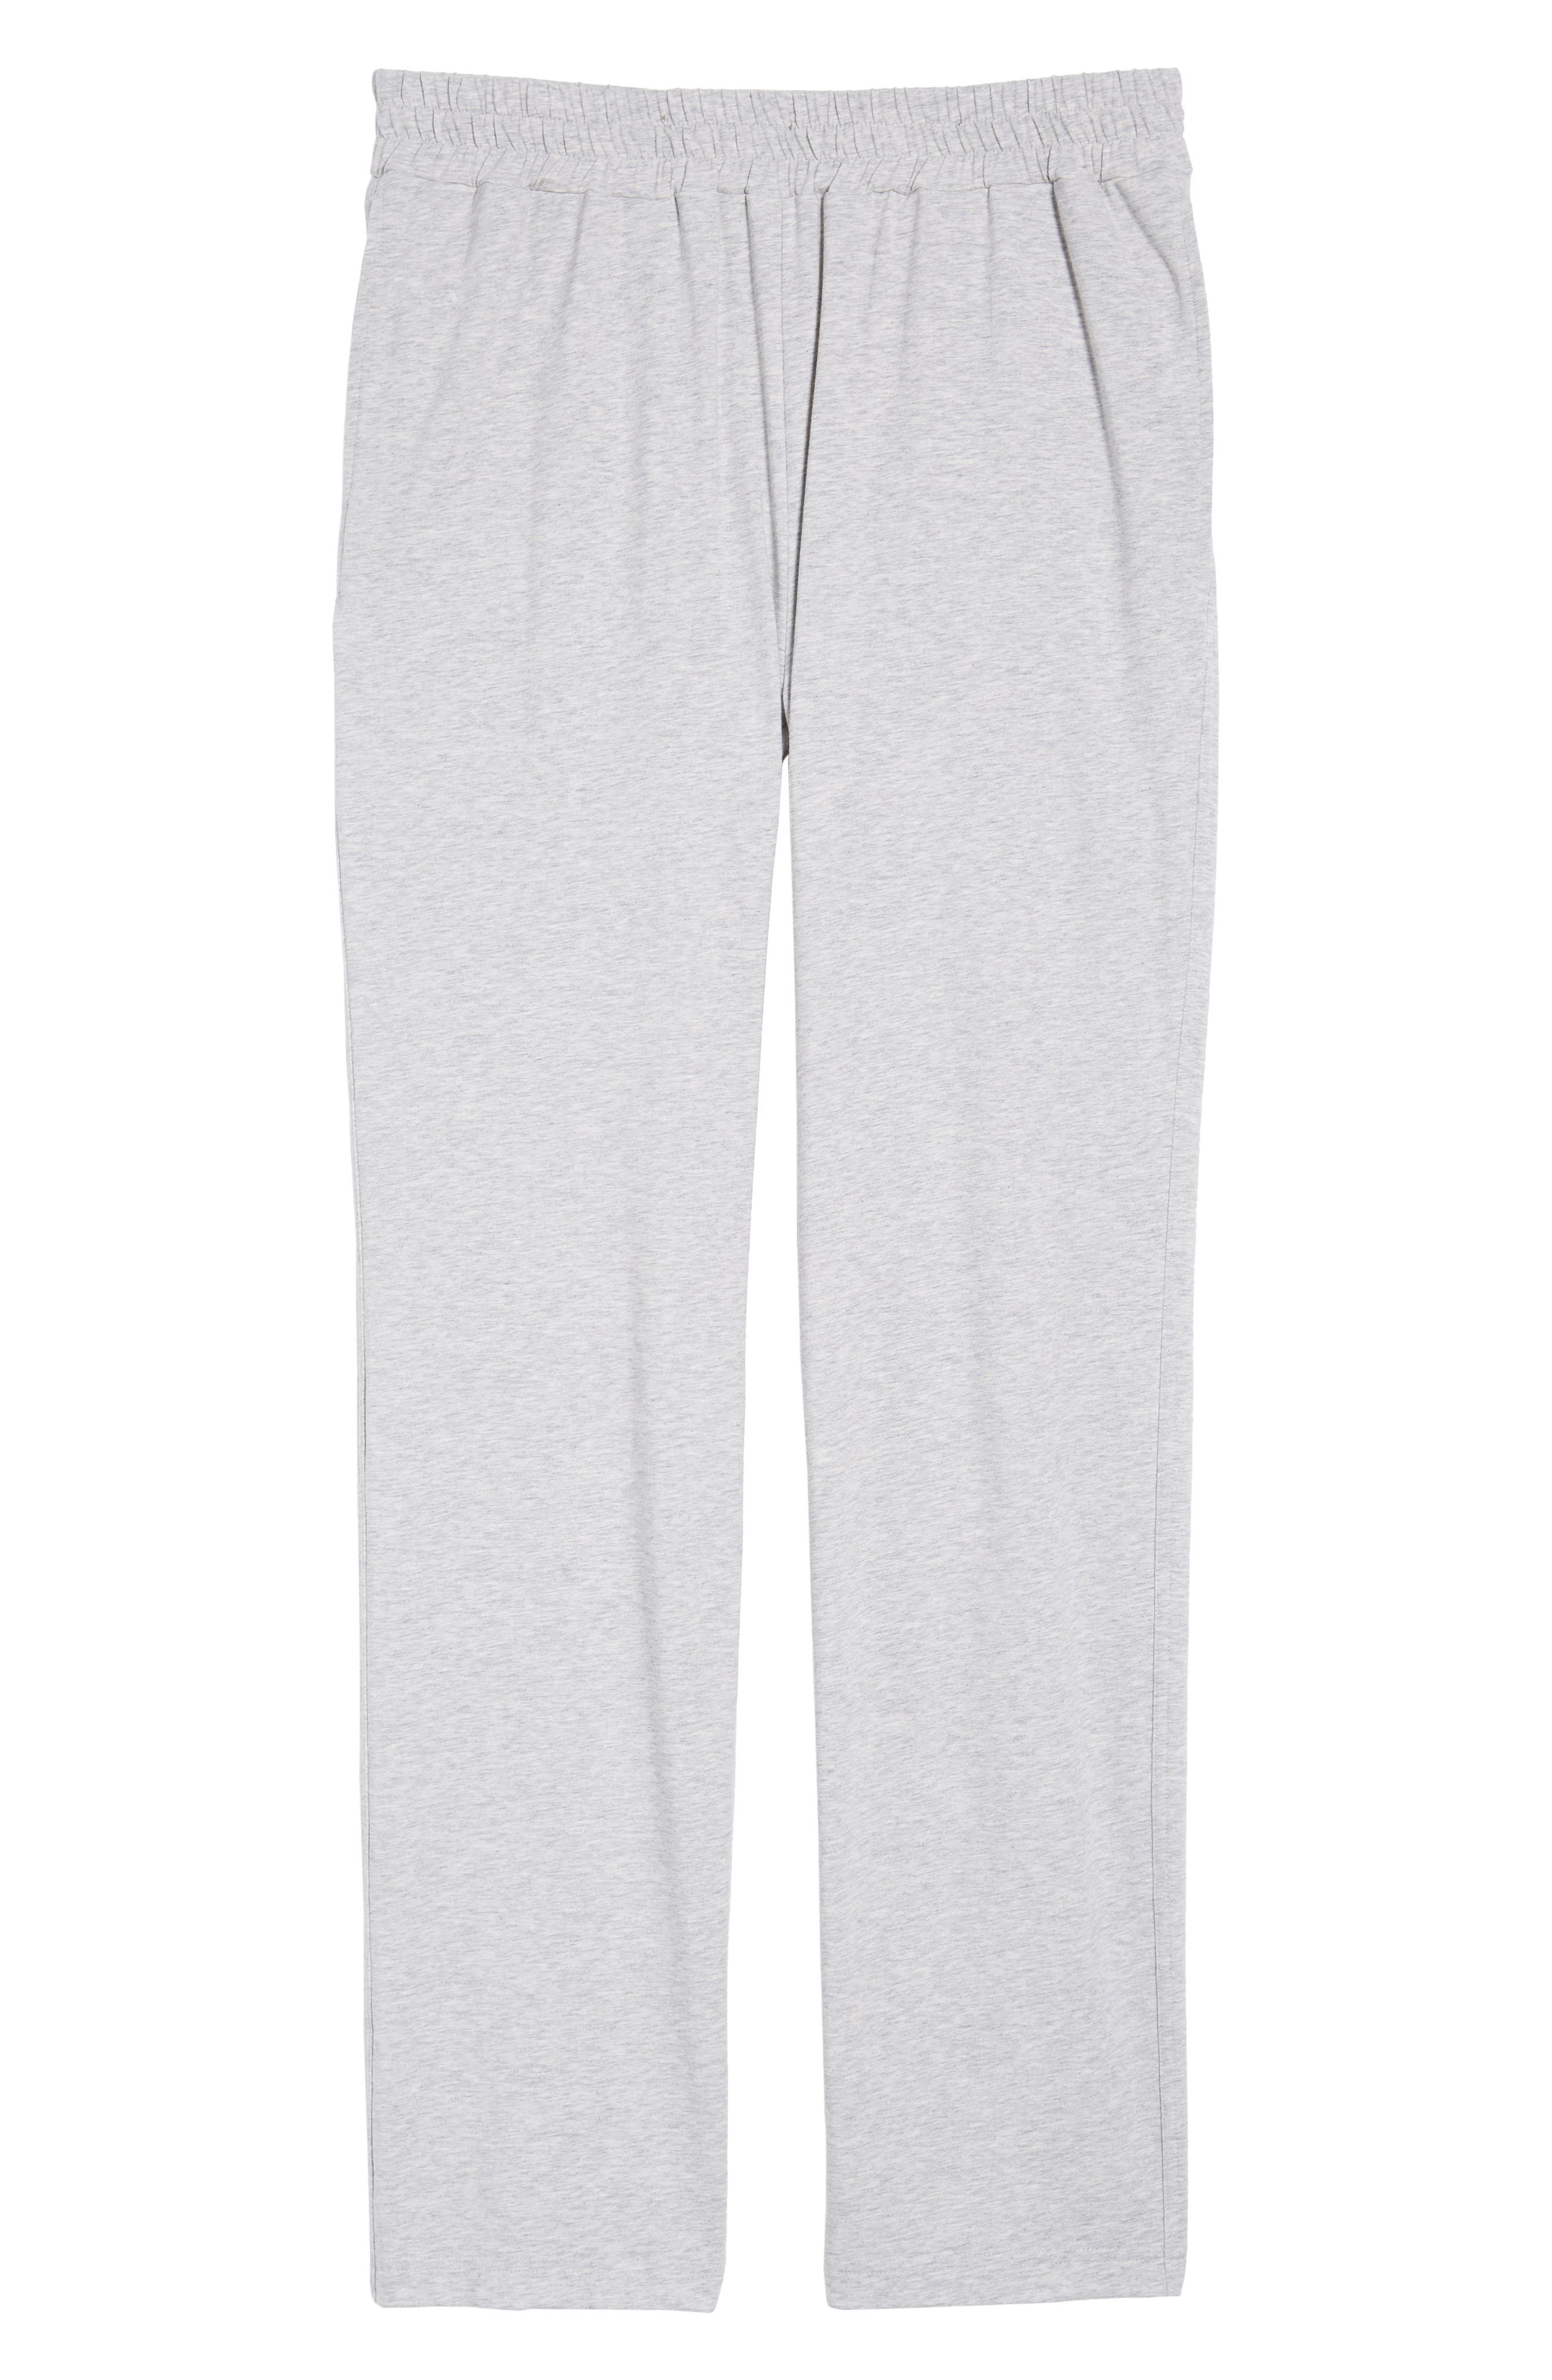 Classic Liquid Cotton Stretch Pants,                             Alternate thumbnail 6, color,                             Heather Grey